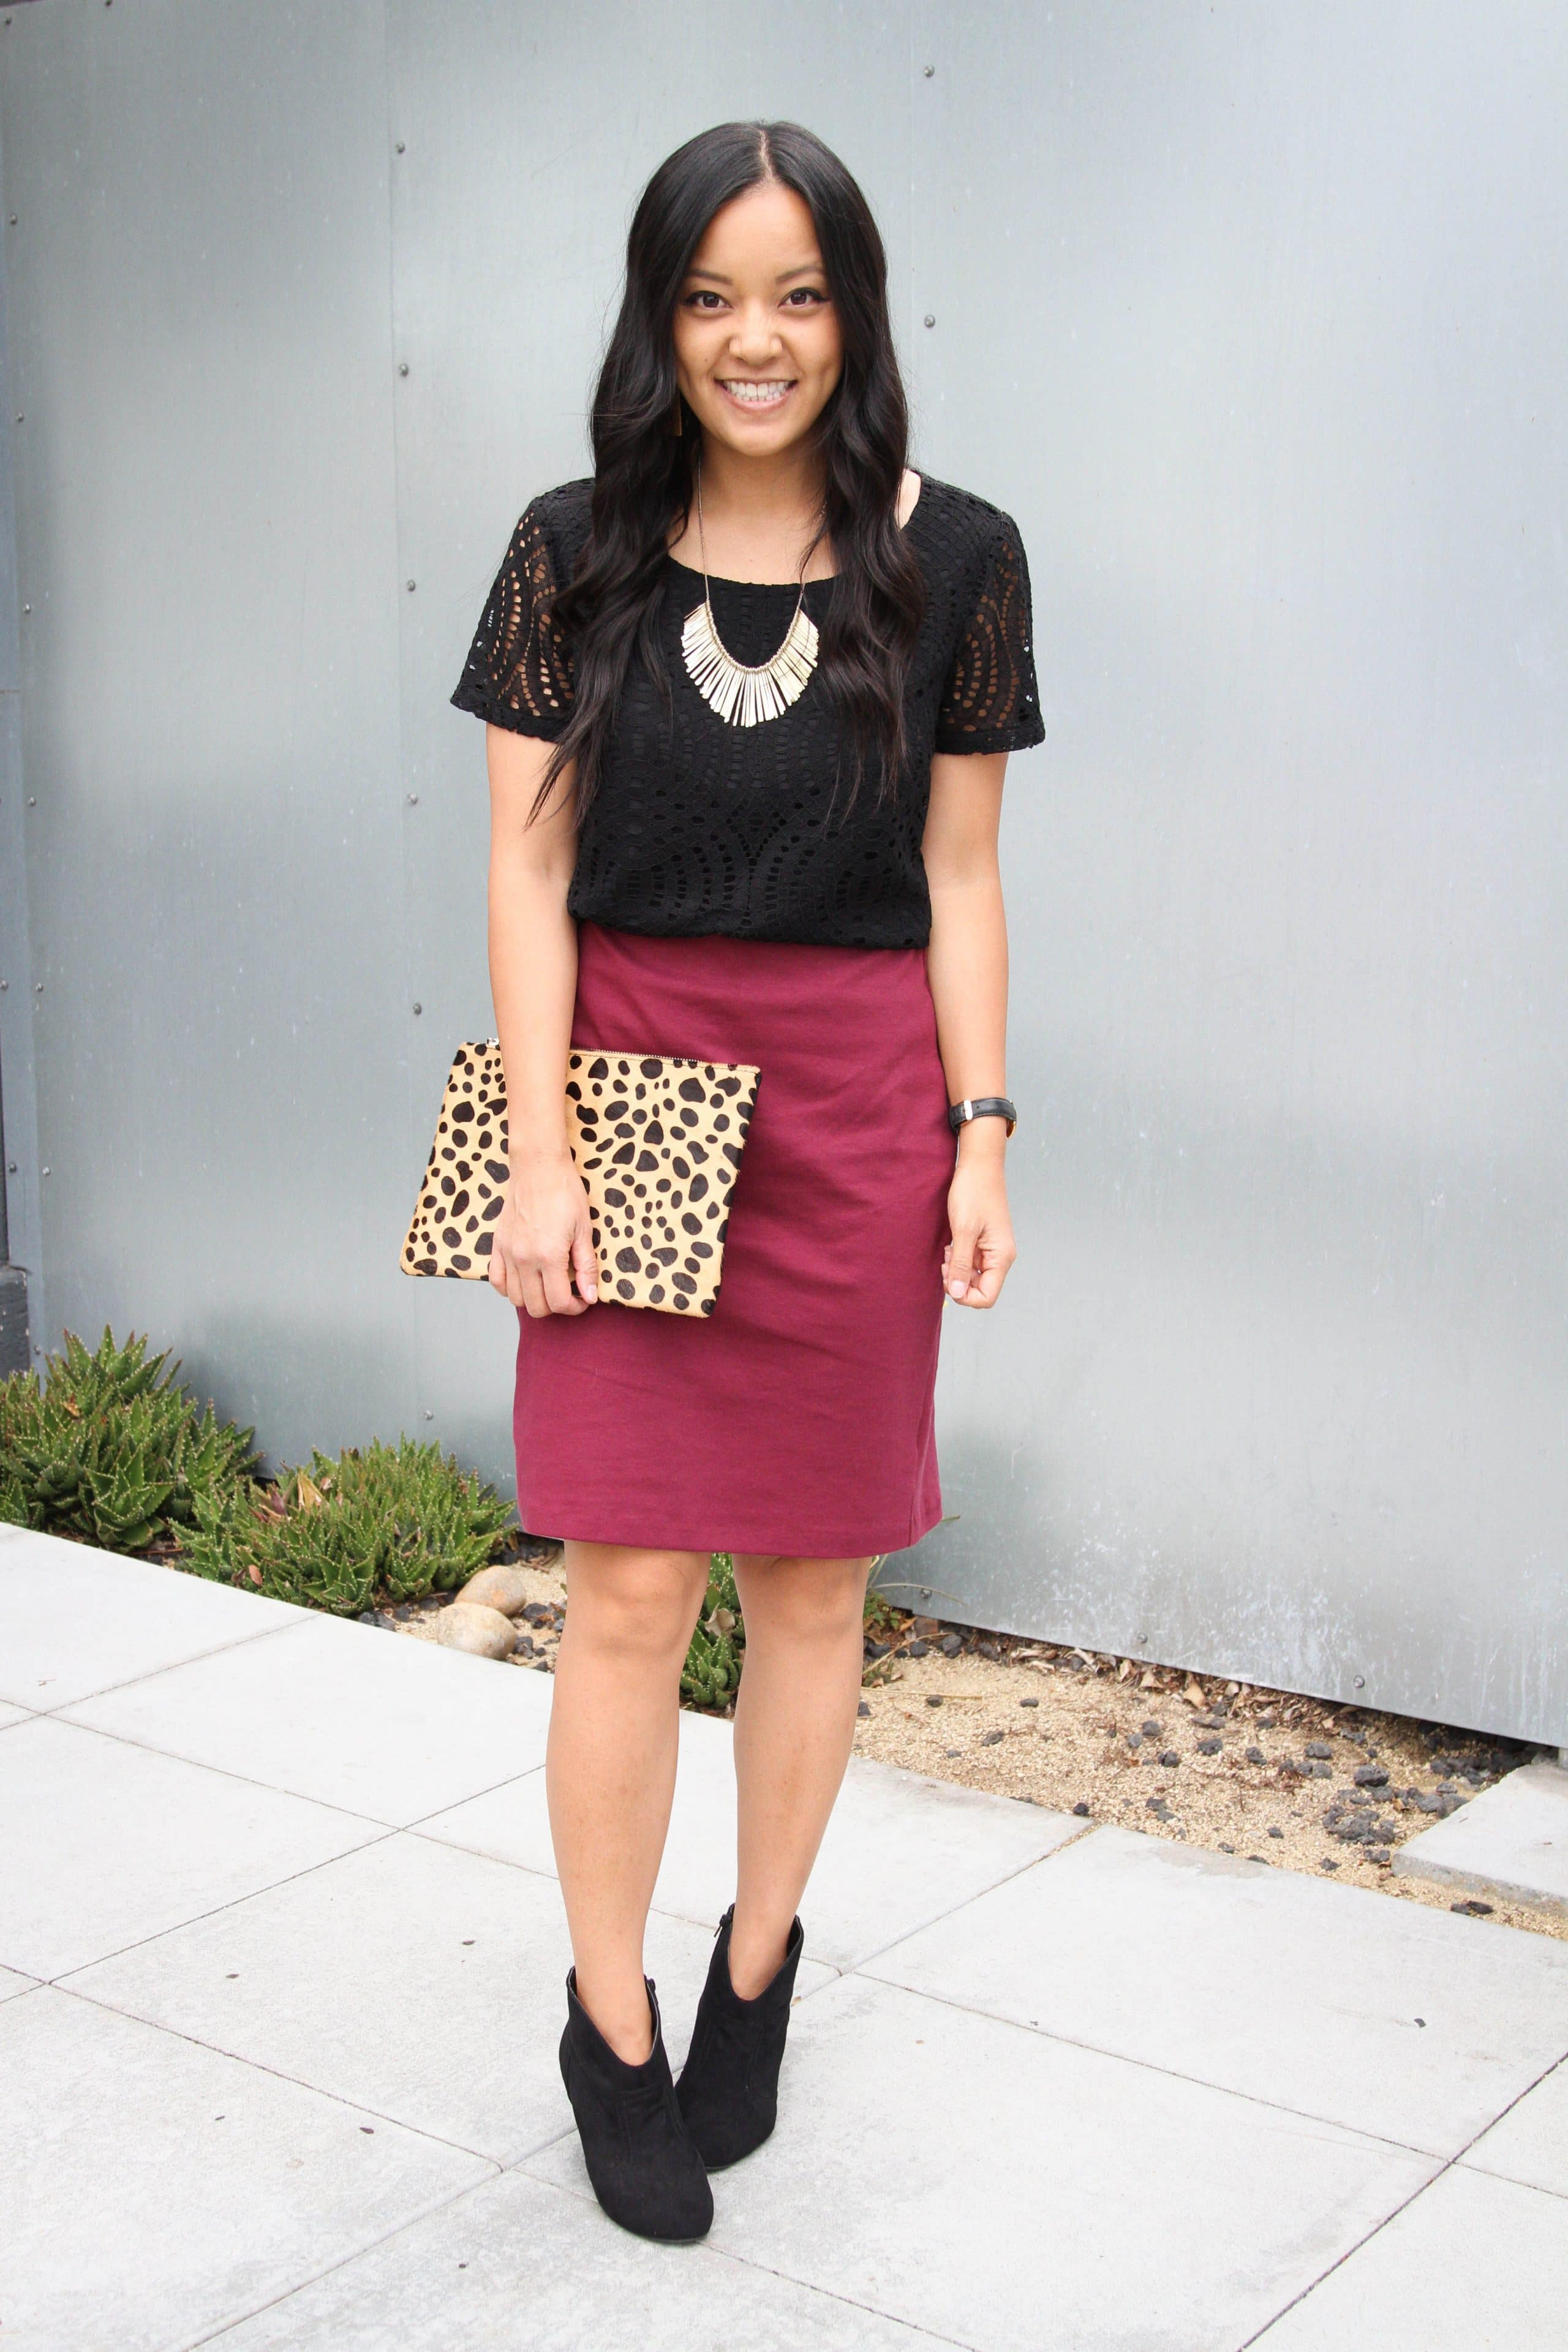 Leopard Clutch + Maroon Skirt + Black Lace Tee